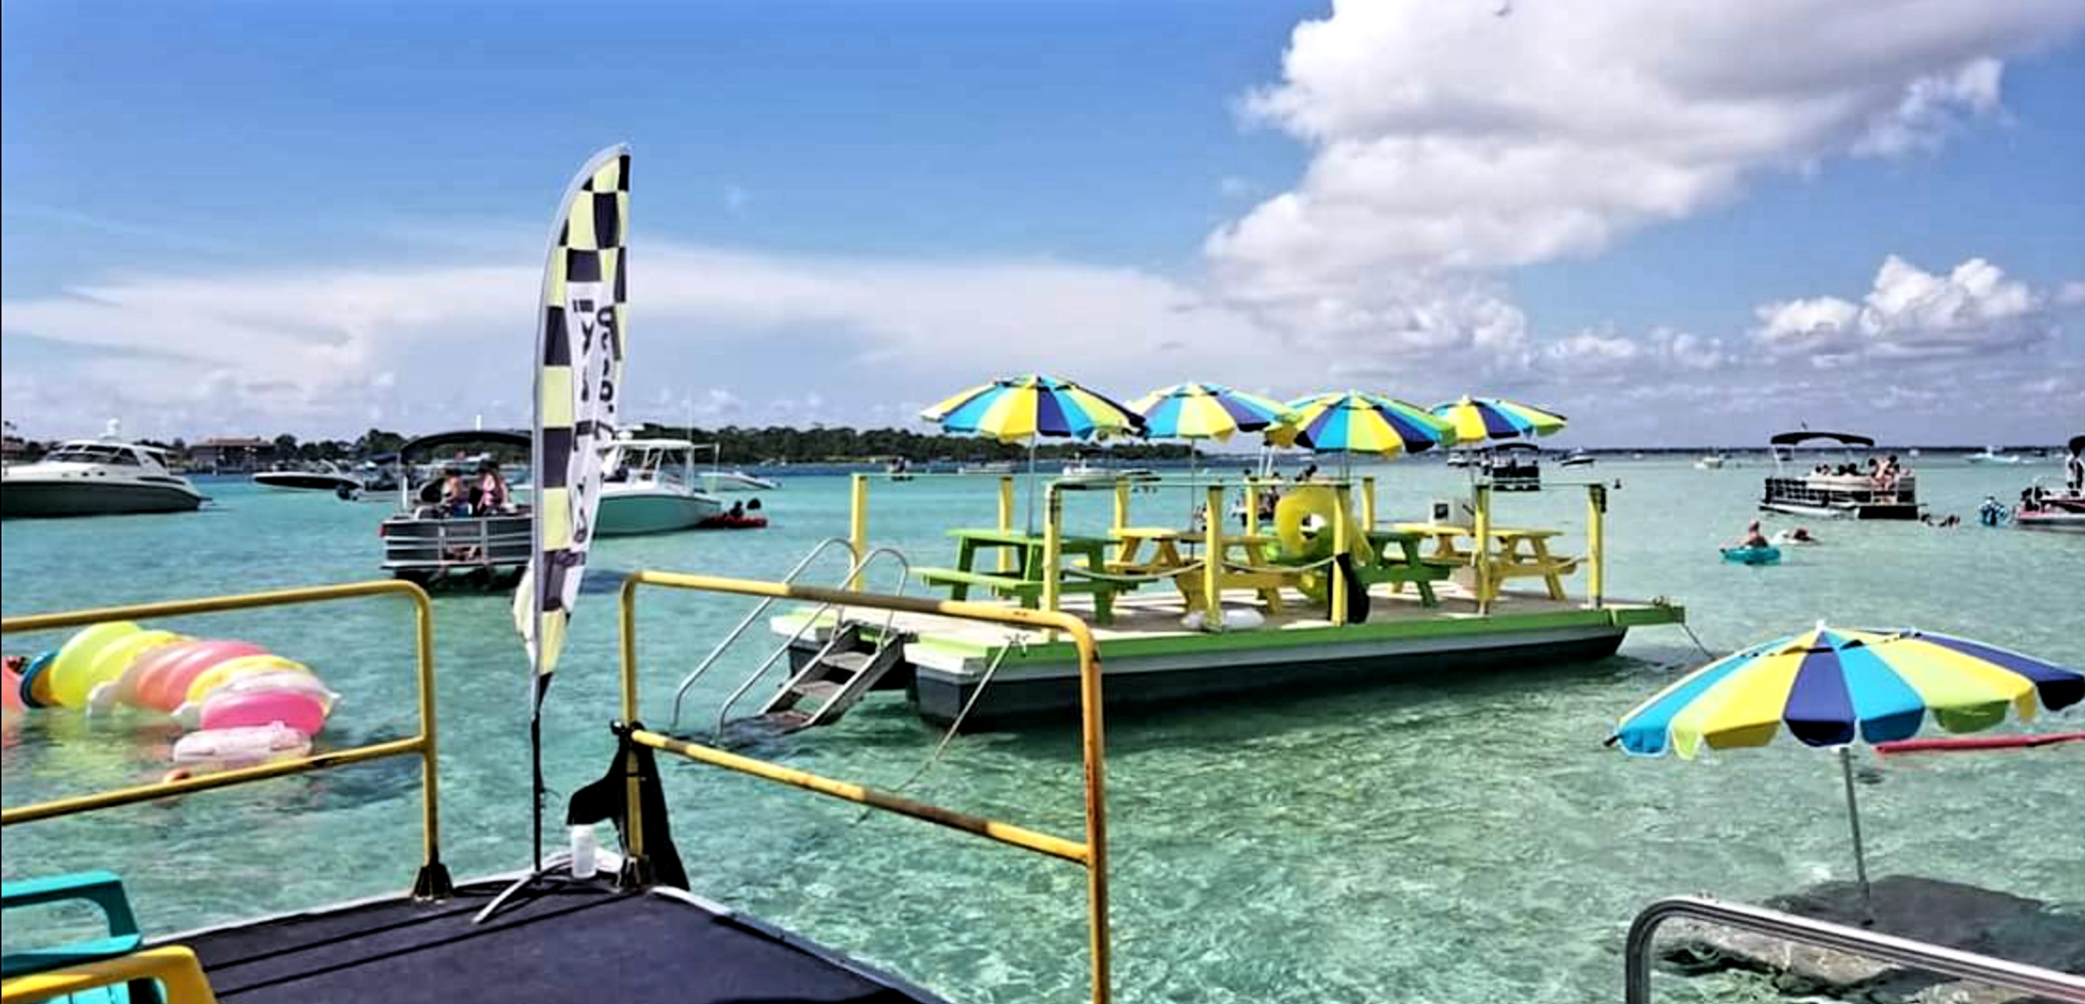 Crab Island Water Taxi image 1